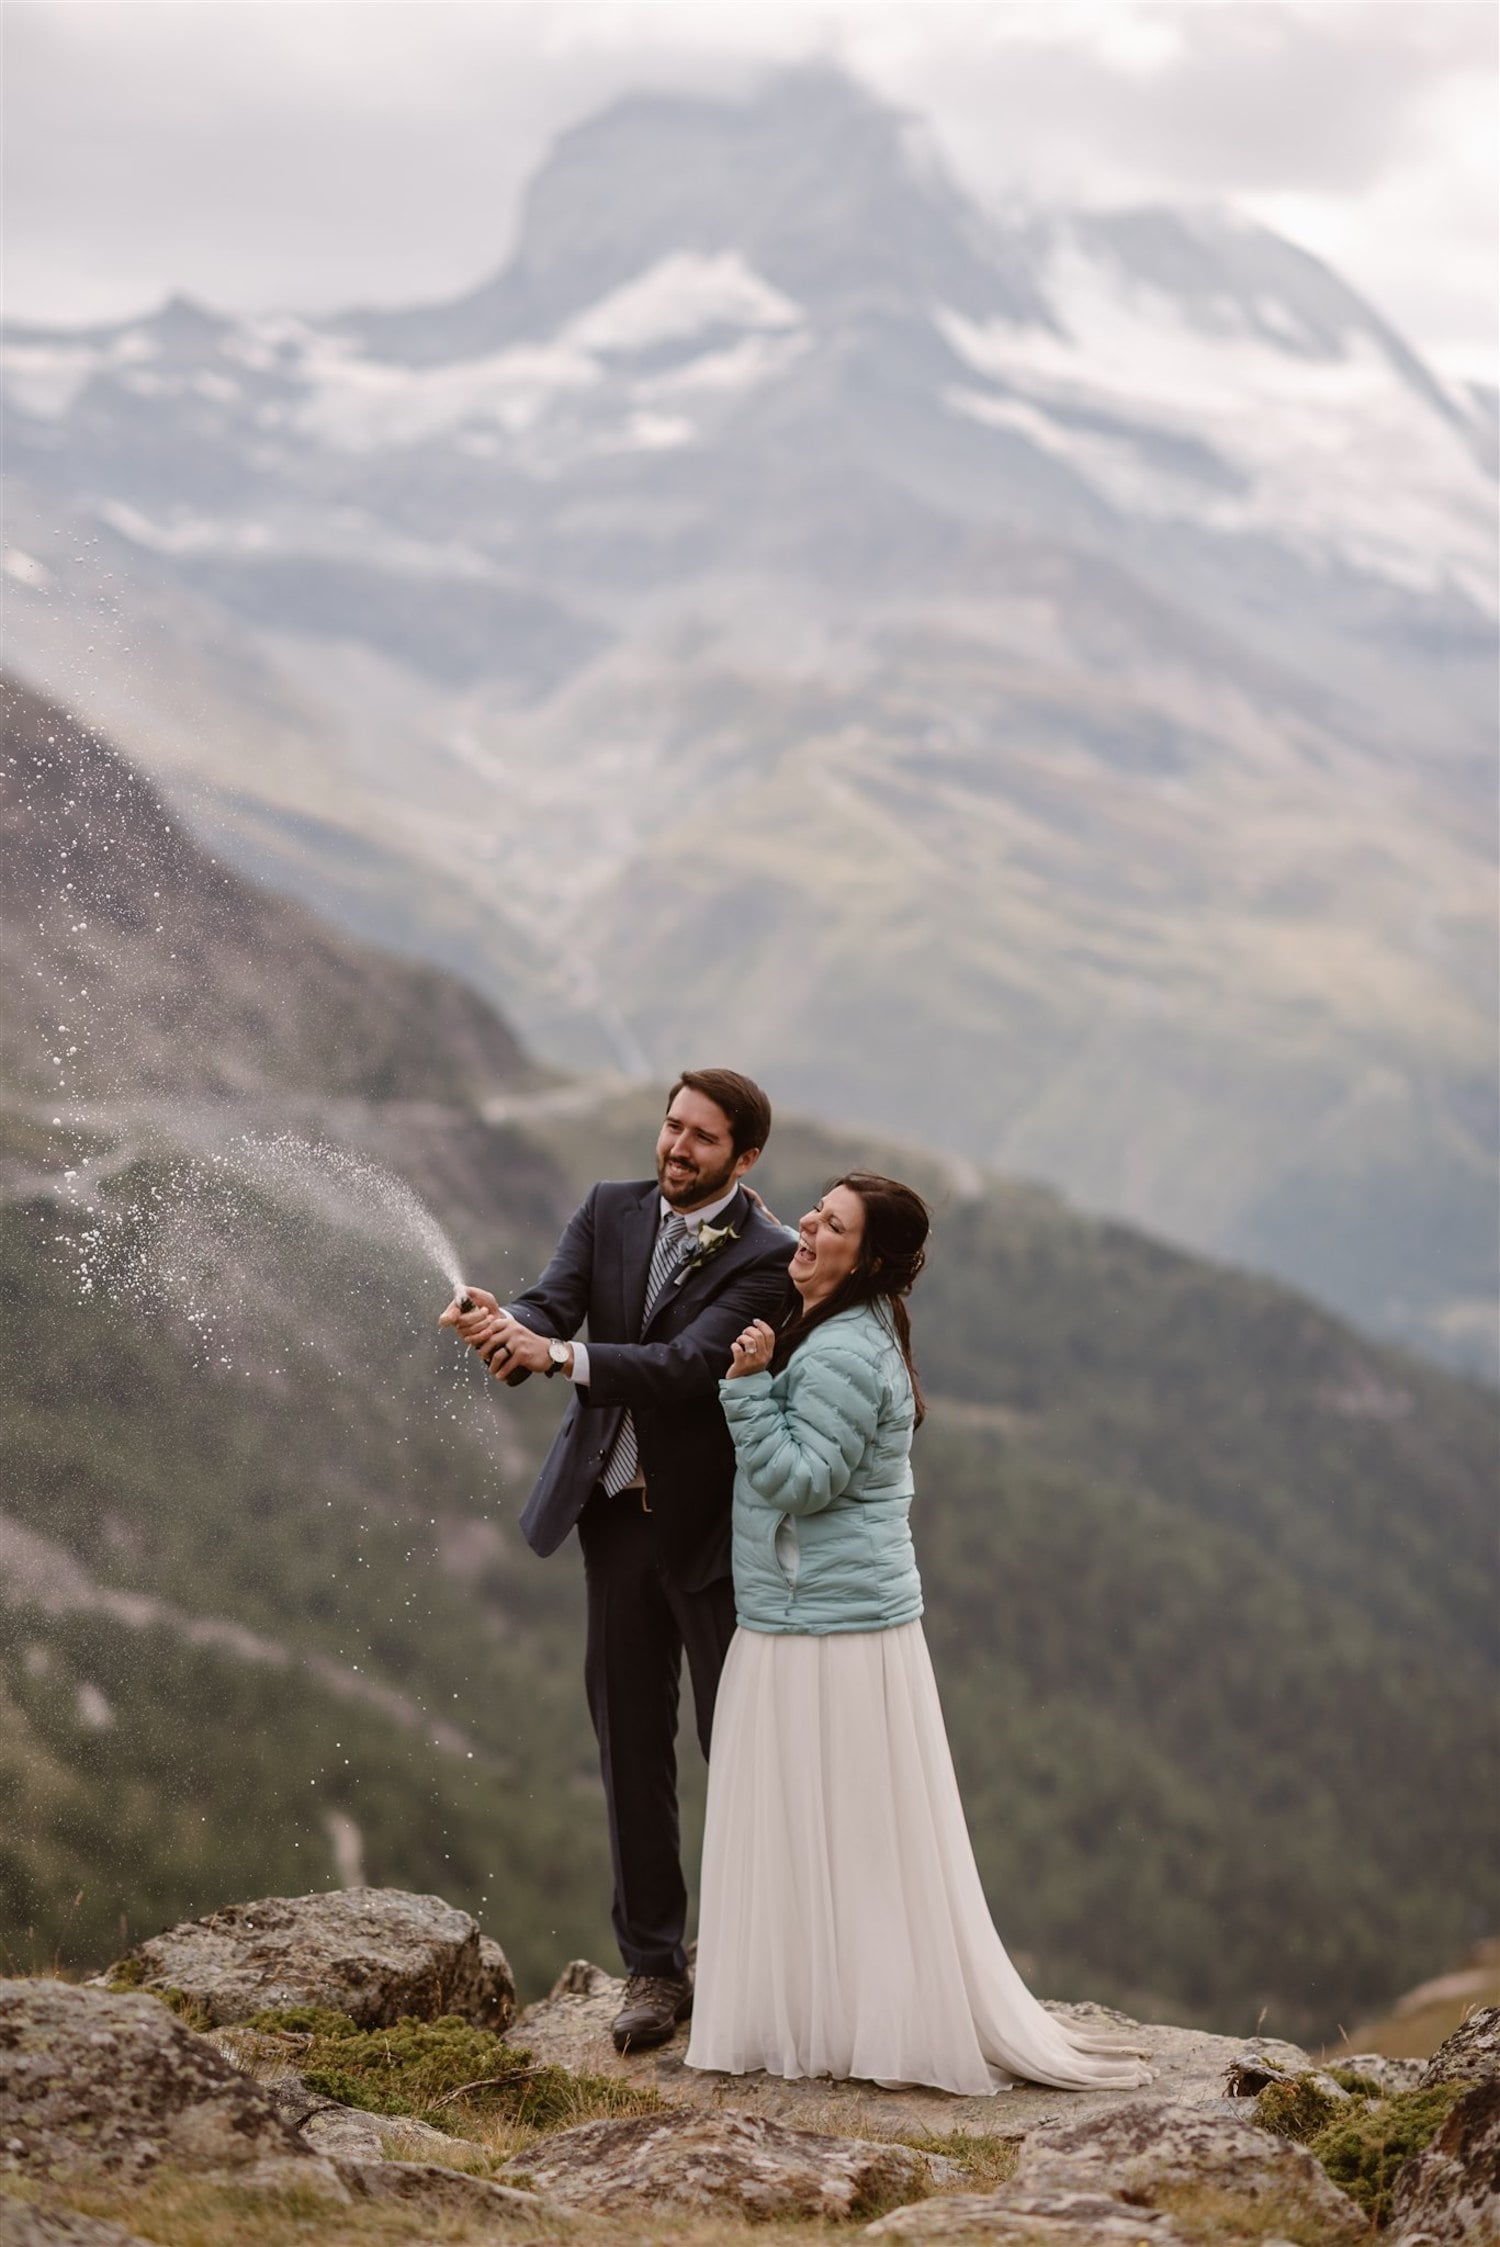 Newlyweds popping the Champagne during their summer elopement in Zermatt